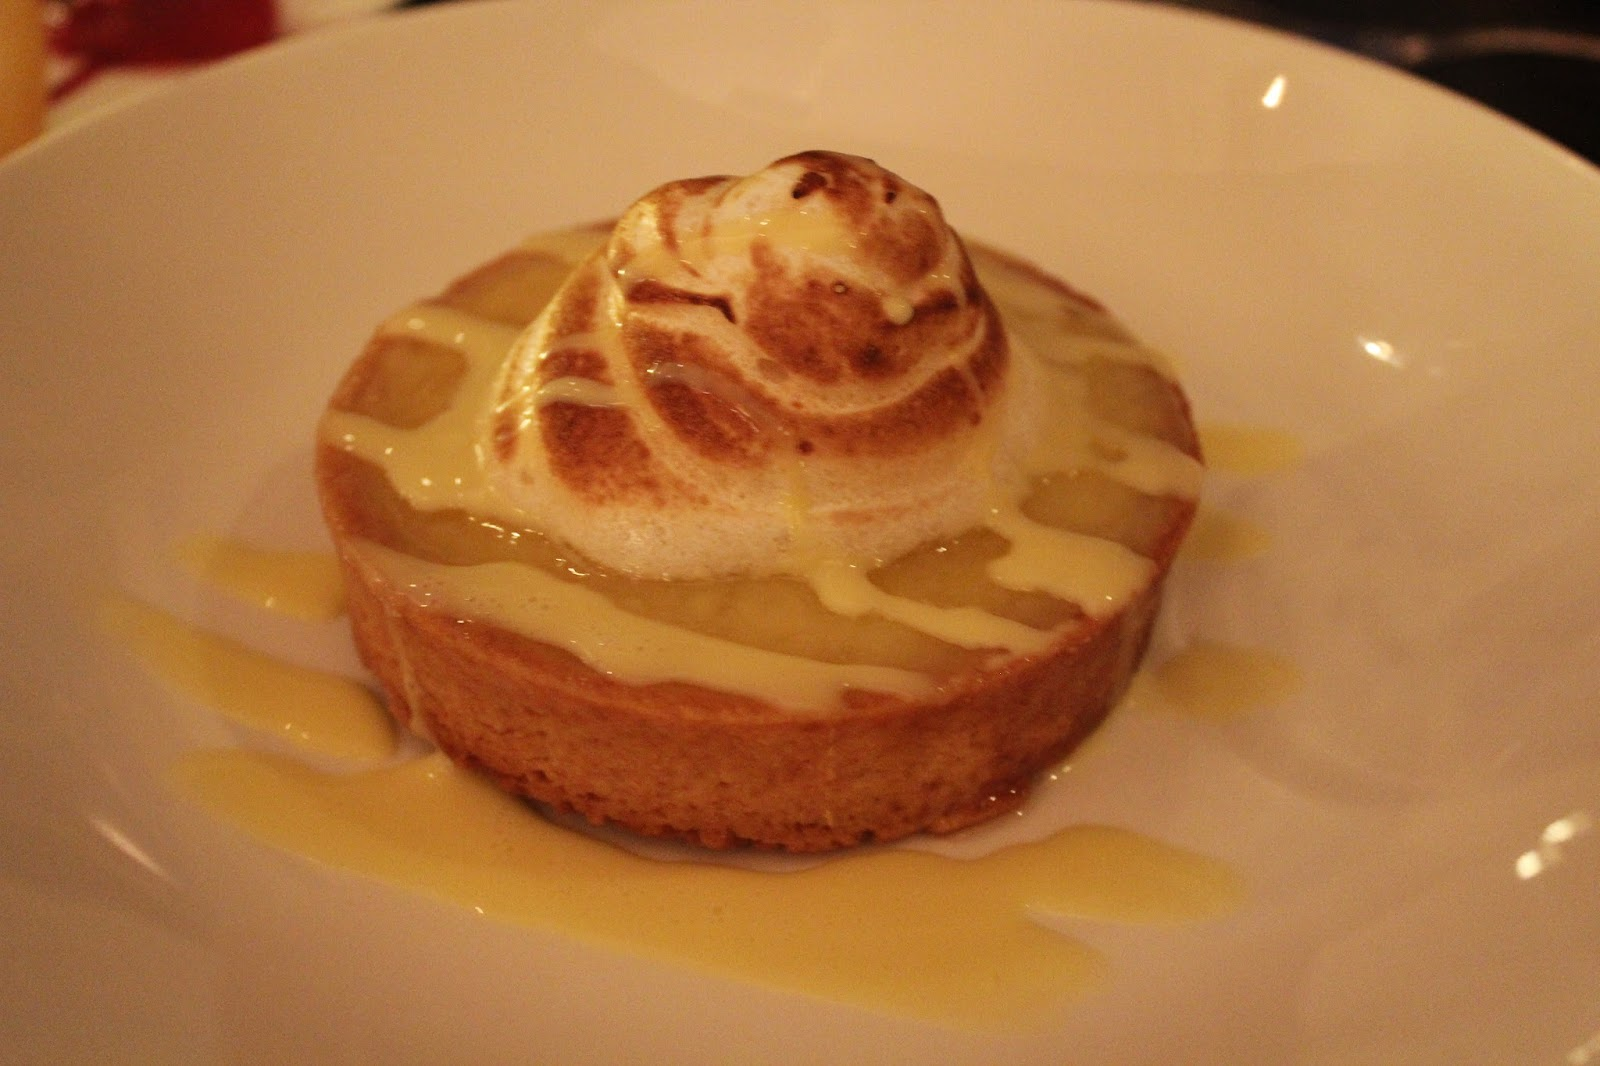 Lemon meringue pie at Chopps American Bar and Grill, Burlington, Mass.